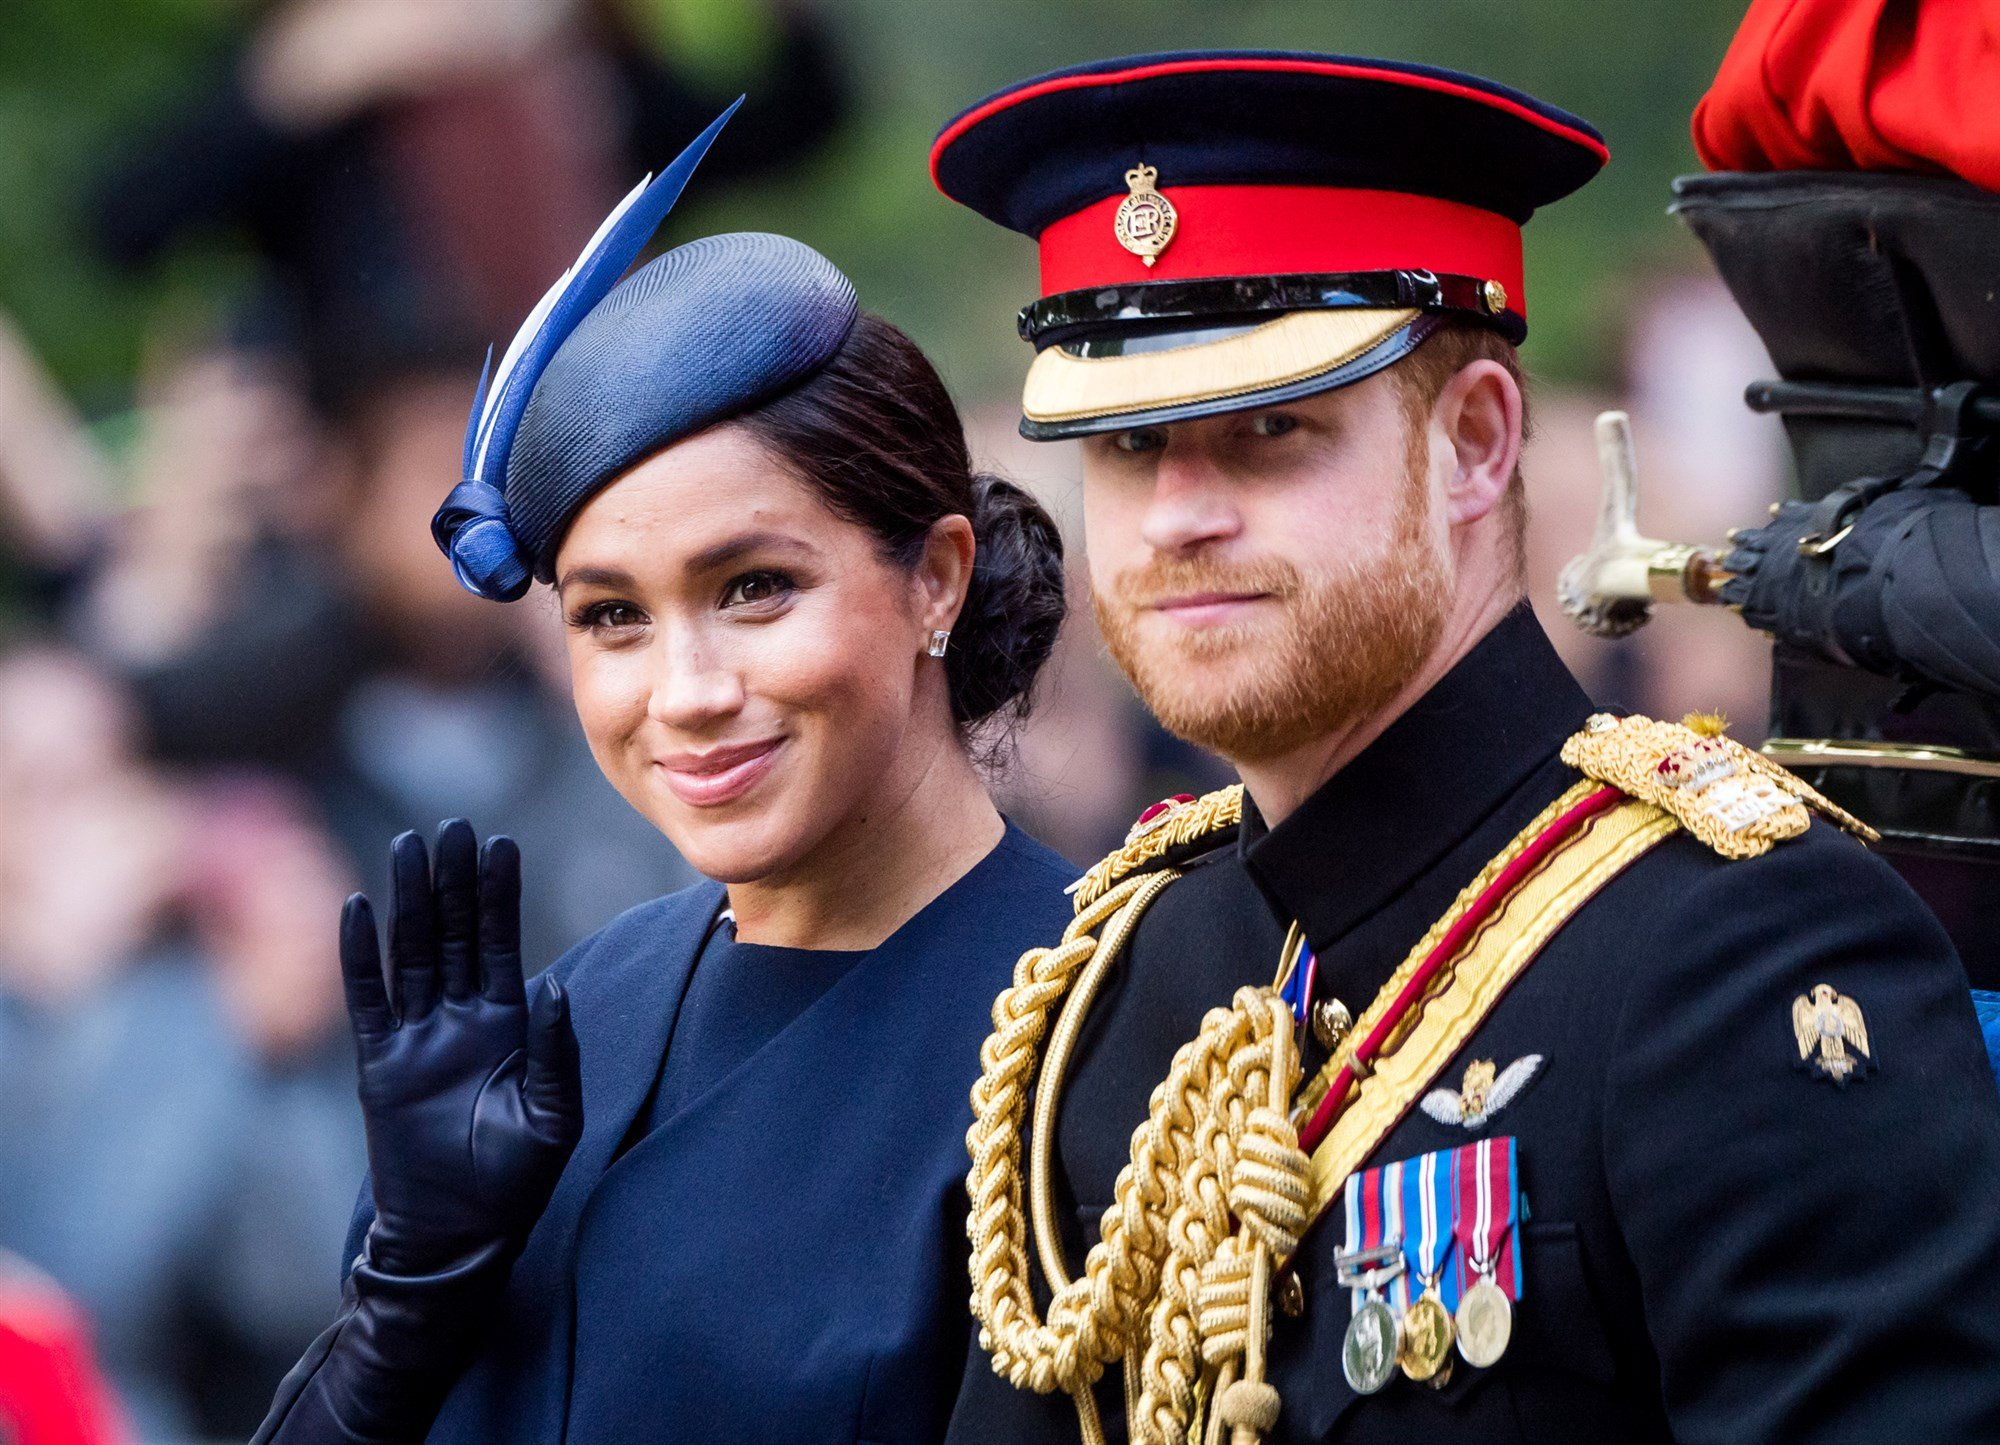 Prince Harry and Meghan Markle announce they are leaving their roles as senior members of the Royal Family